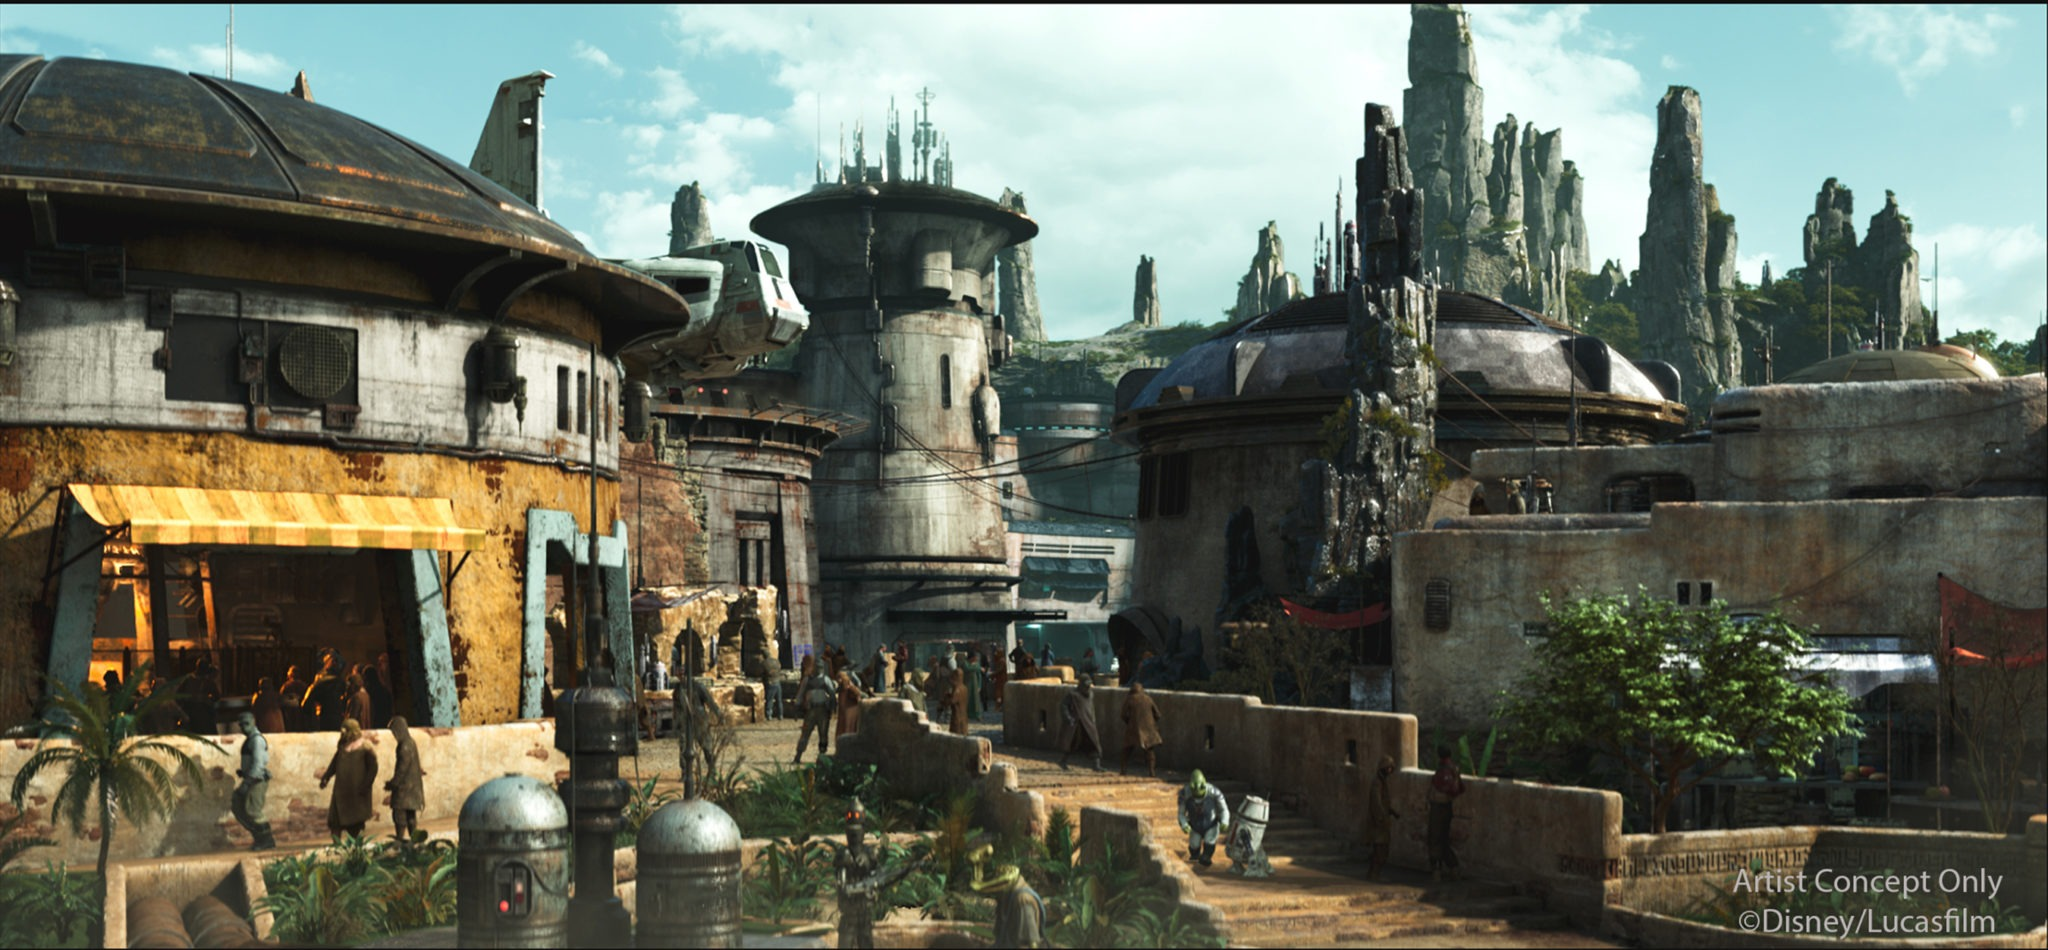 Black Spire Outpost is the name of the village inside of the upcoming